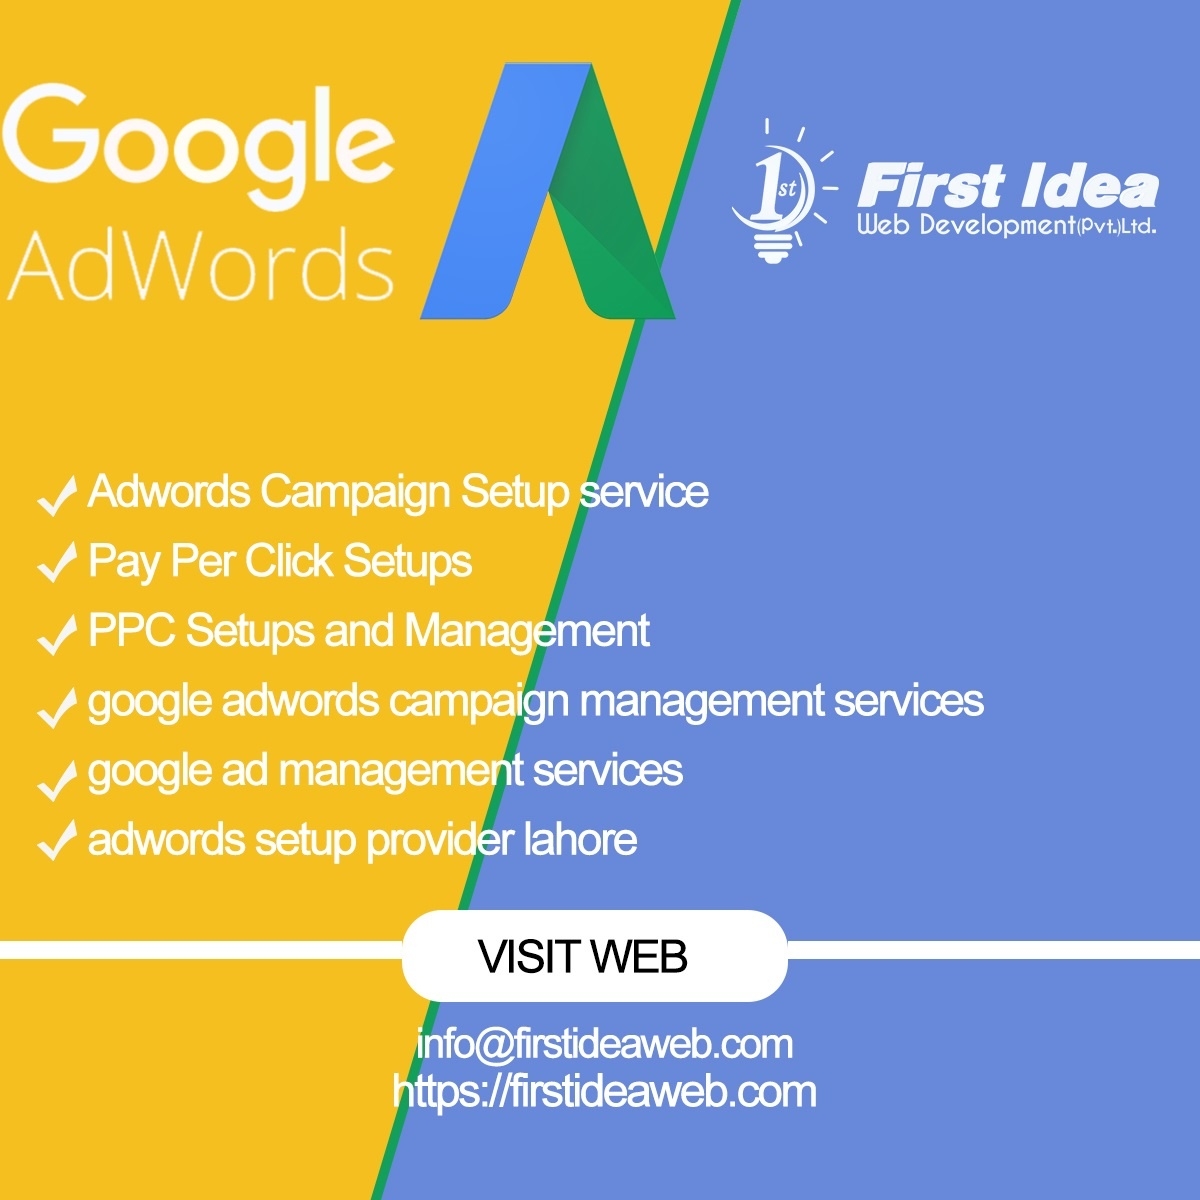 Adwords Campaign Setup service, Pay Per Click Setups, PPC Setups and Management, google adwords campaign management services, google ad management services, adwords setup provider lahore,